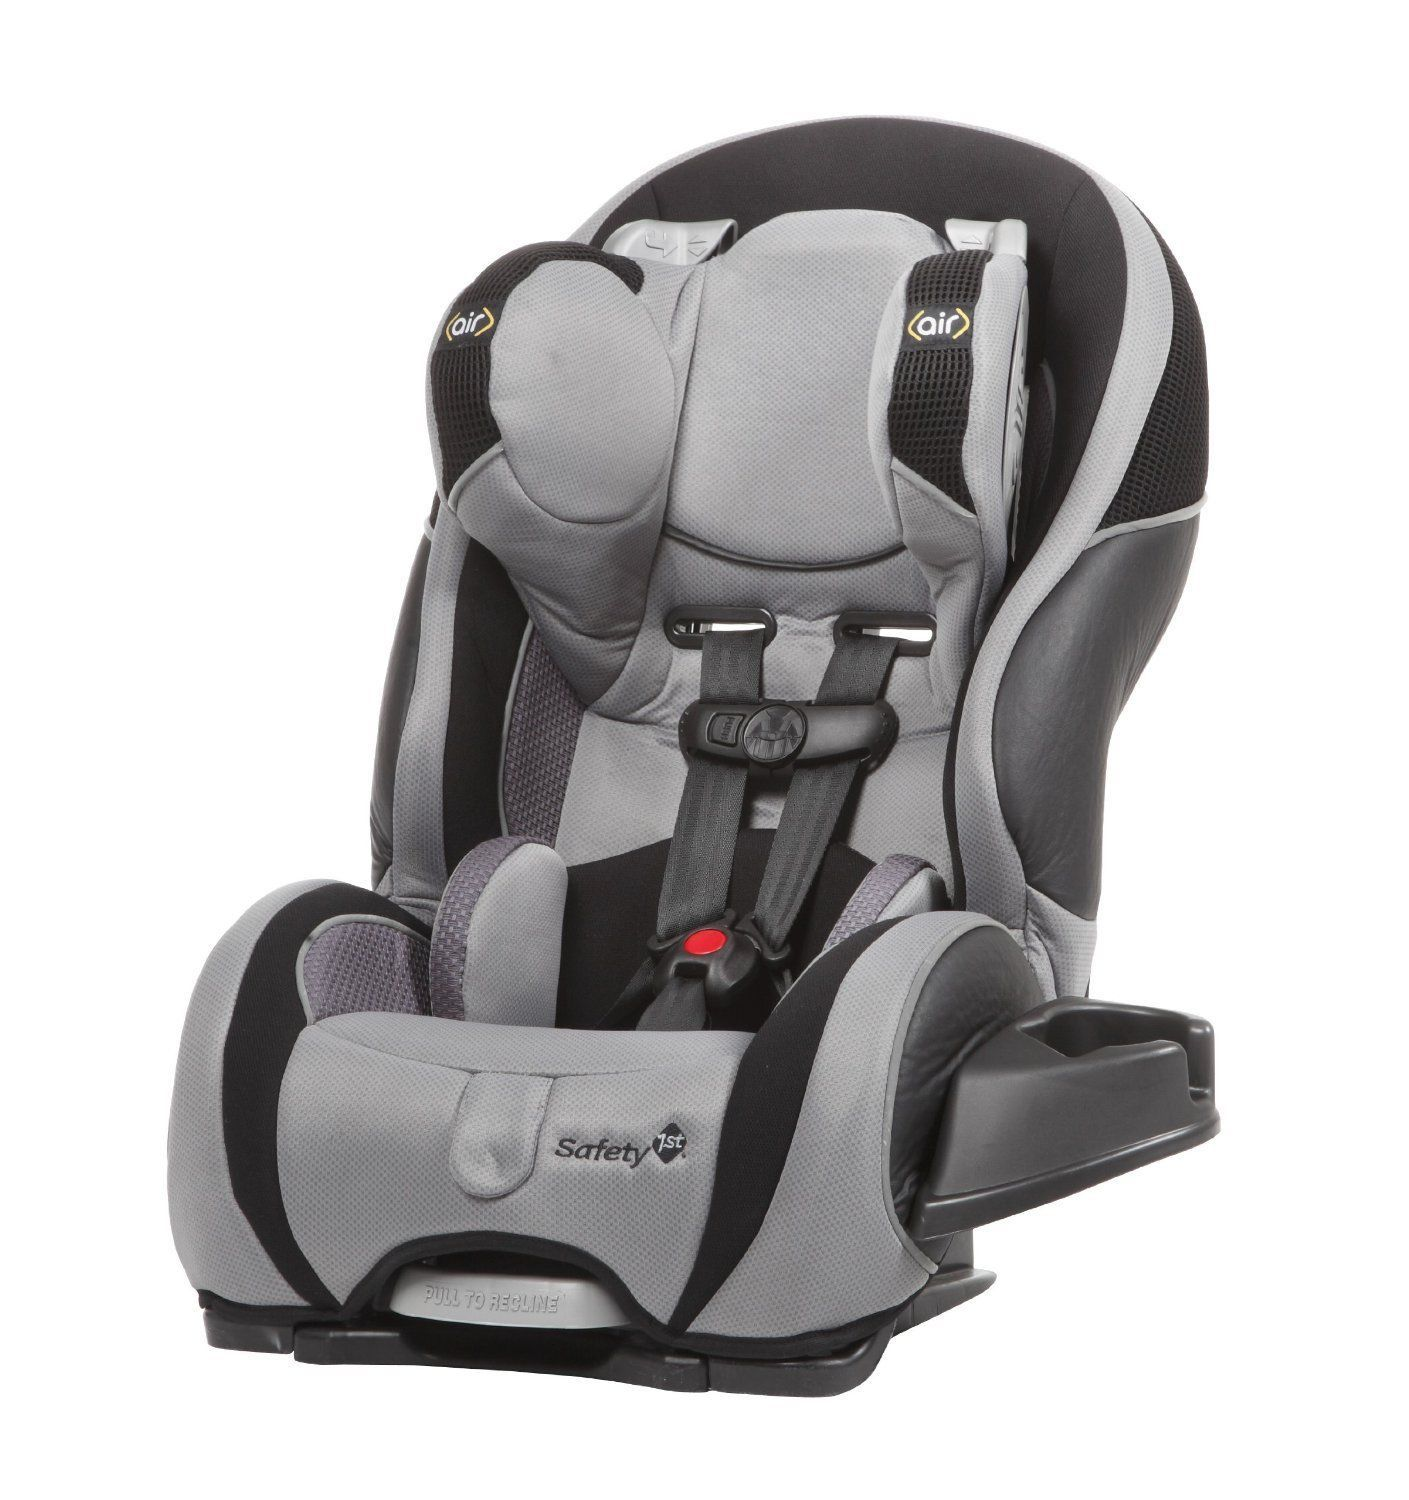 child safety car seat booster baby toddler infant convertible front rear facing convertible. Black Bedroom Furniture Sets. Home Design Ideas